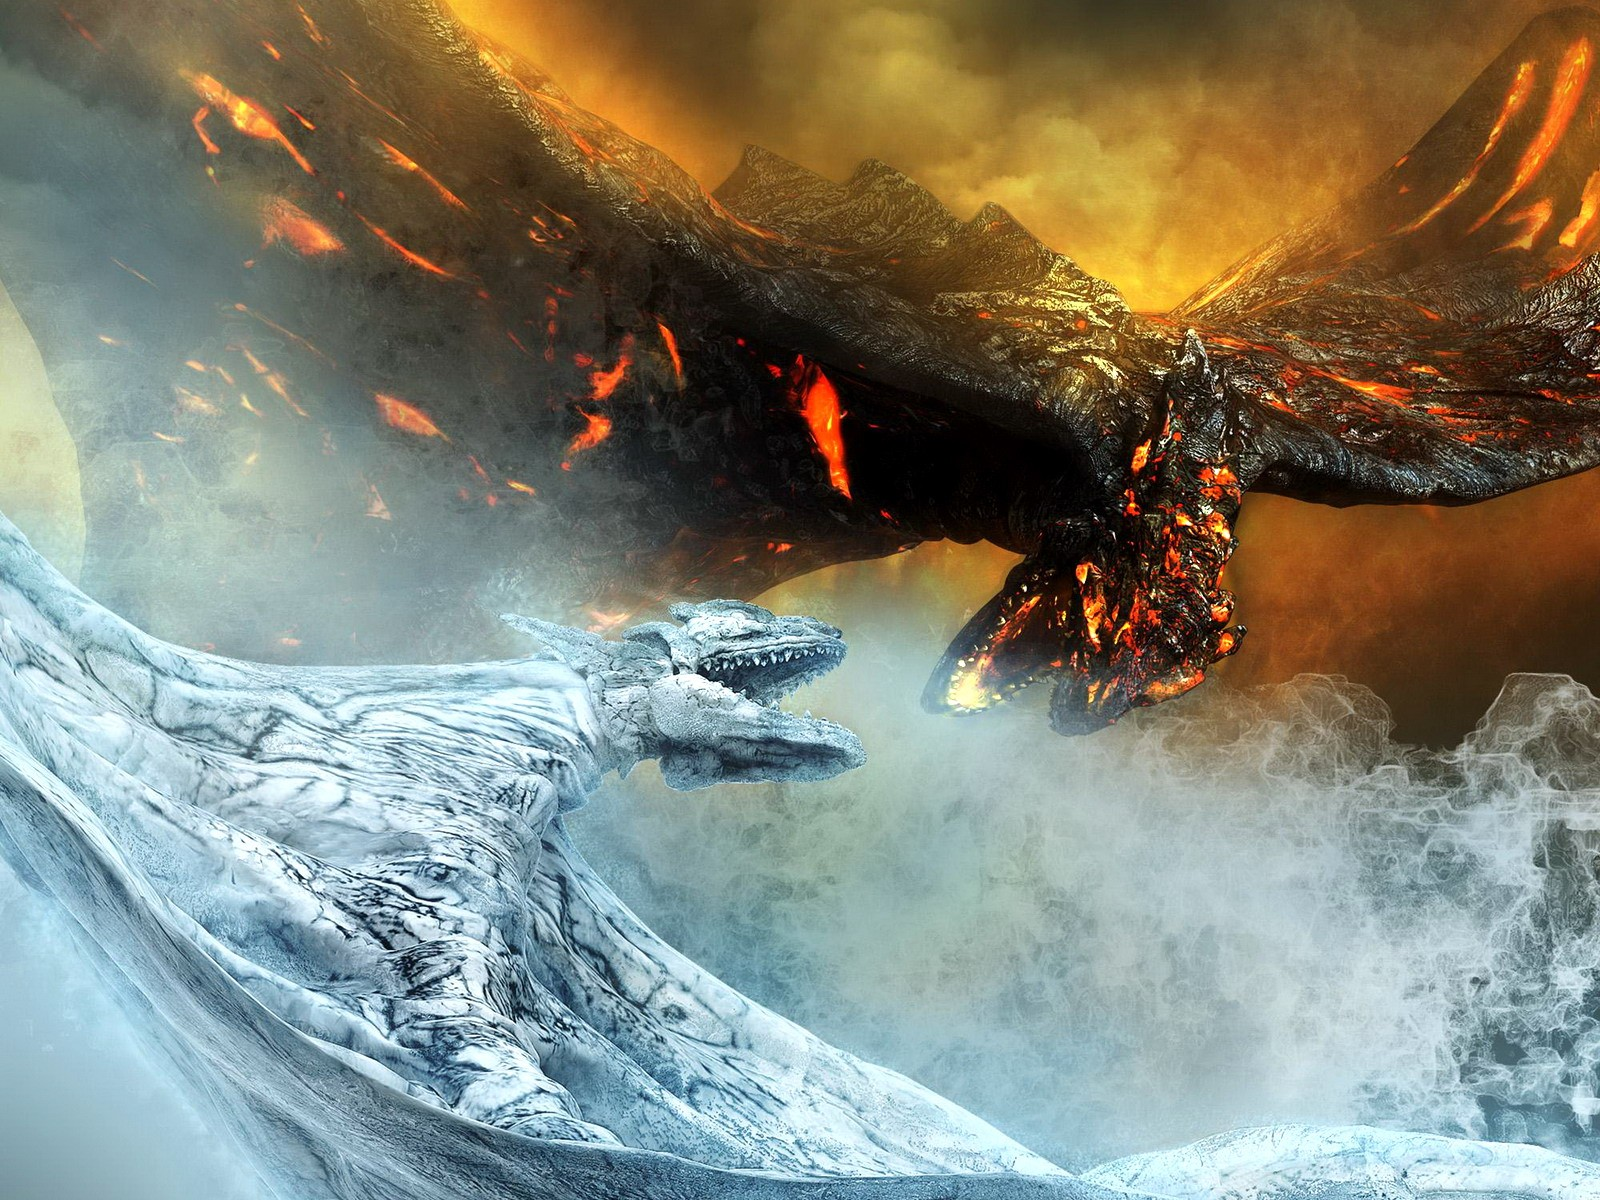 fire ice dragon wallpapers fire ice dragon wallpapers fire ice 1600x1200